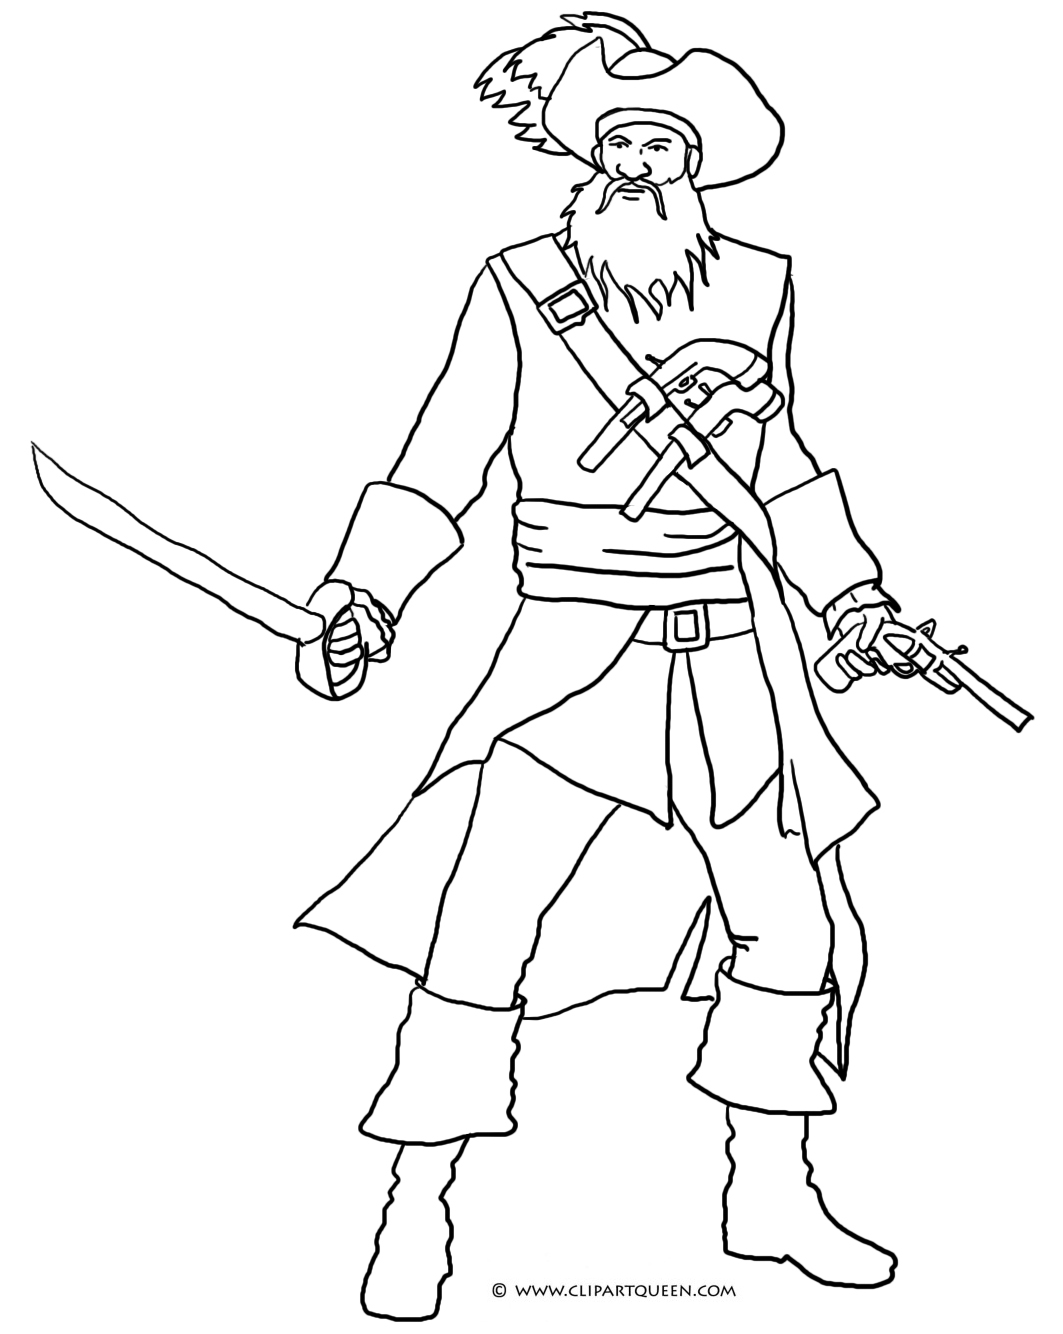 pirate coloring pages images | Pirate Coloring Pages